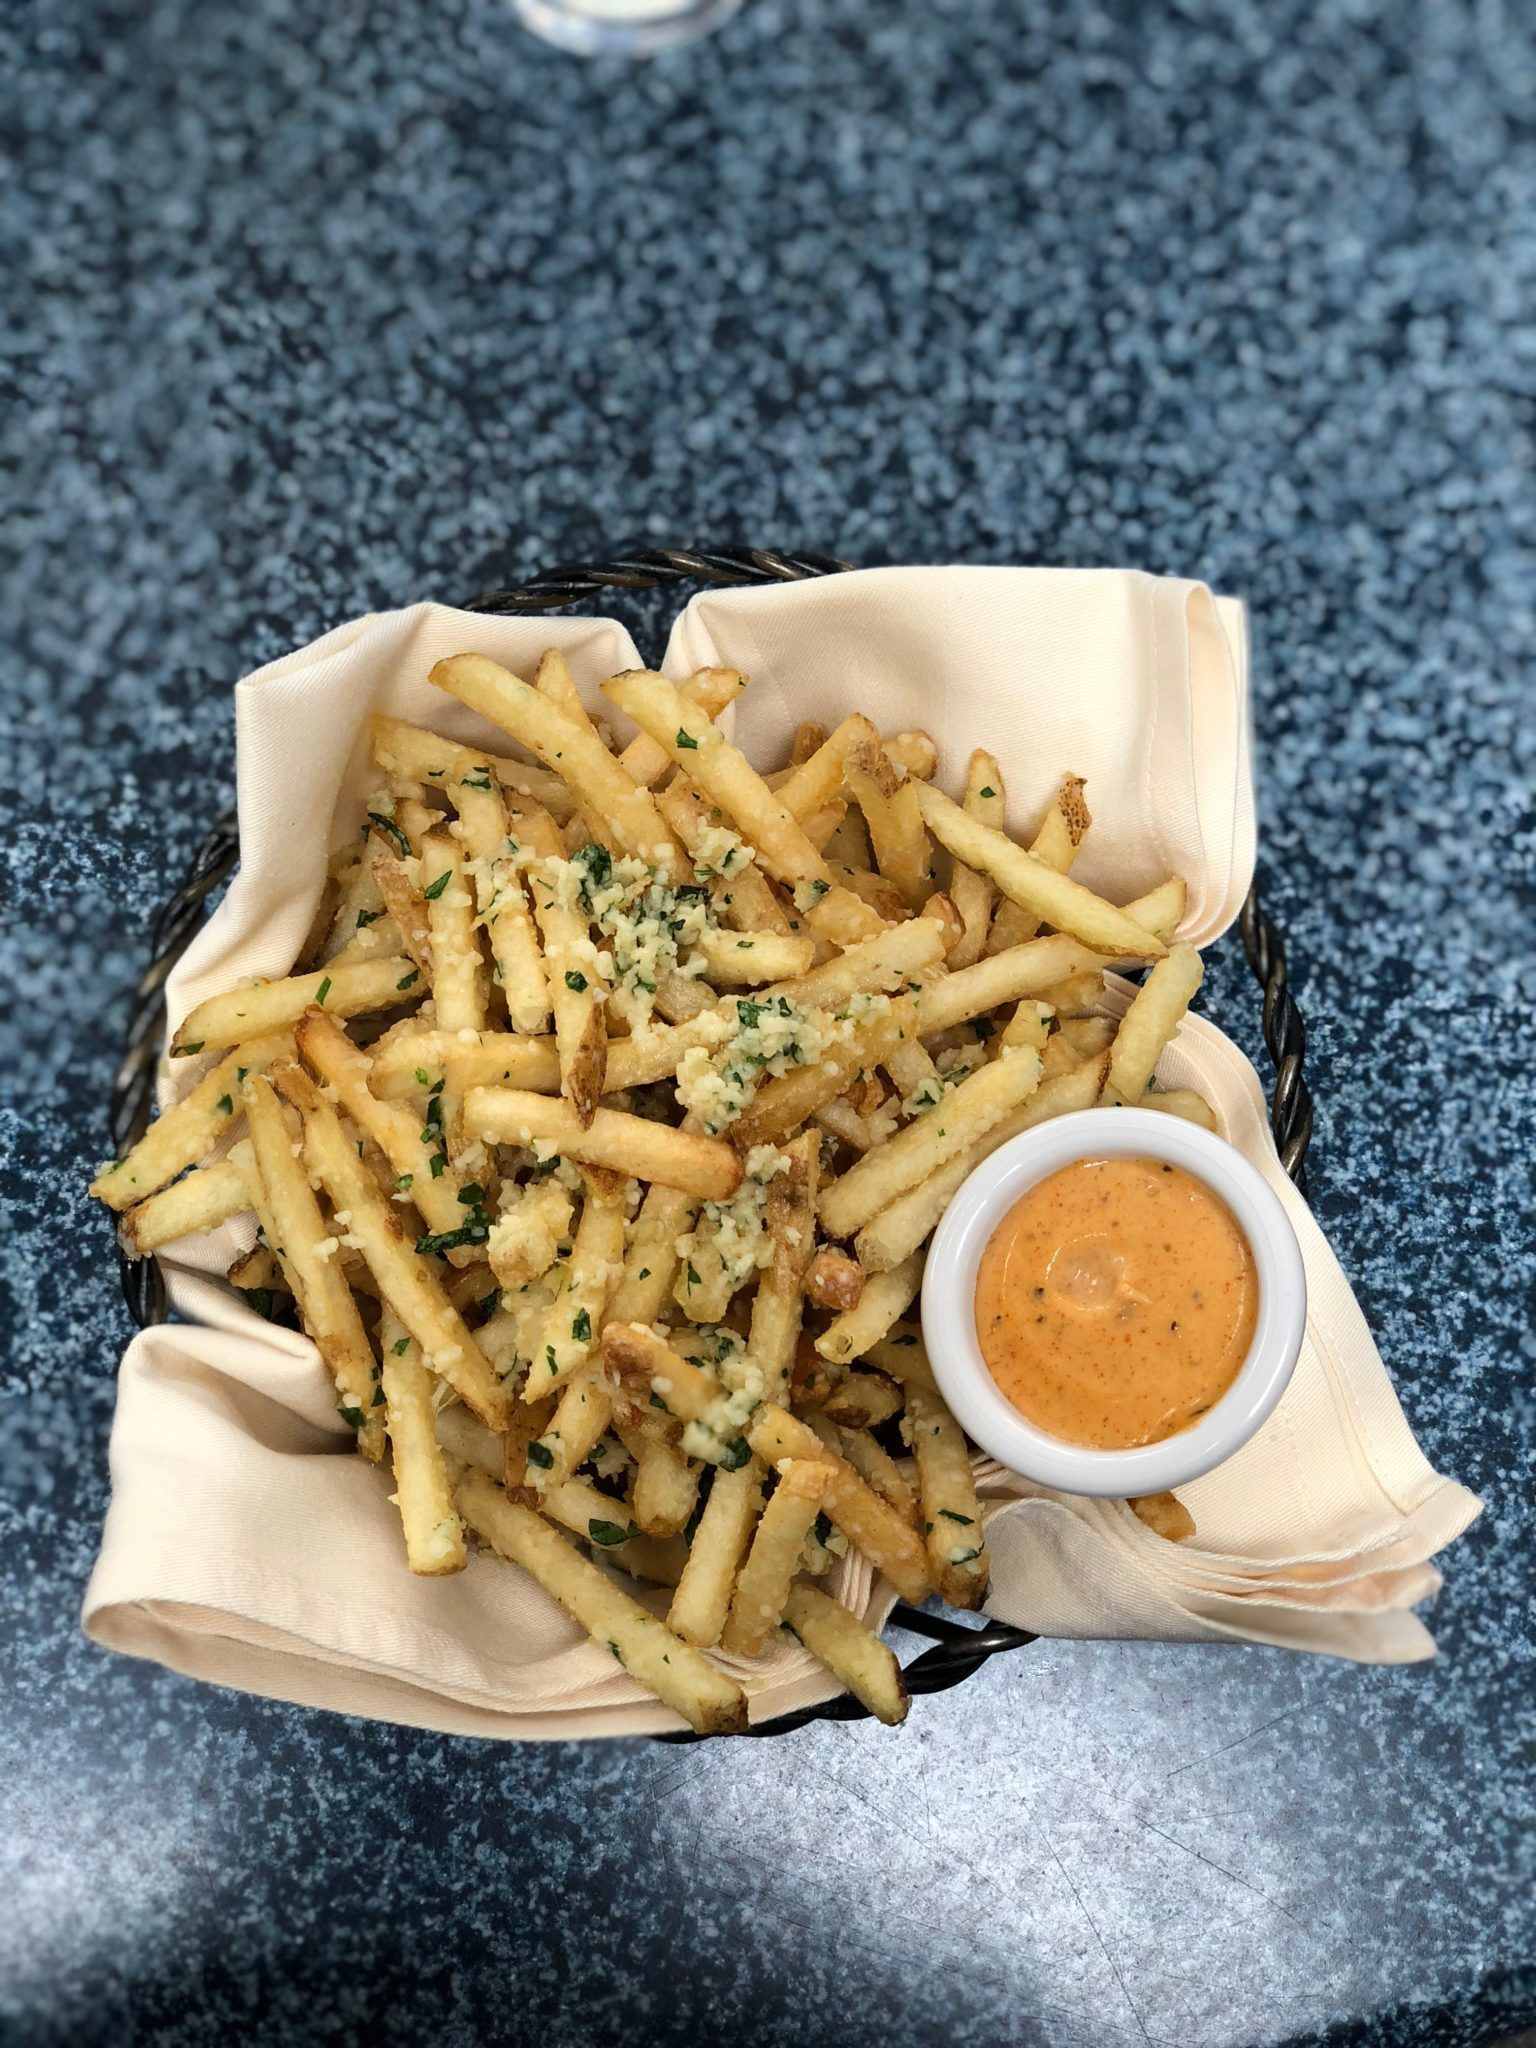 The Best Things I Ate in Disneyland - The Best Foods at Disneyland #disneylandfood